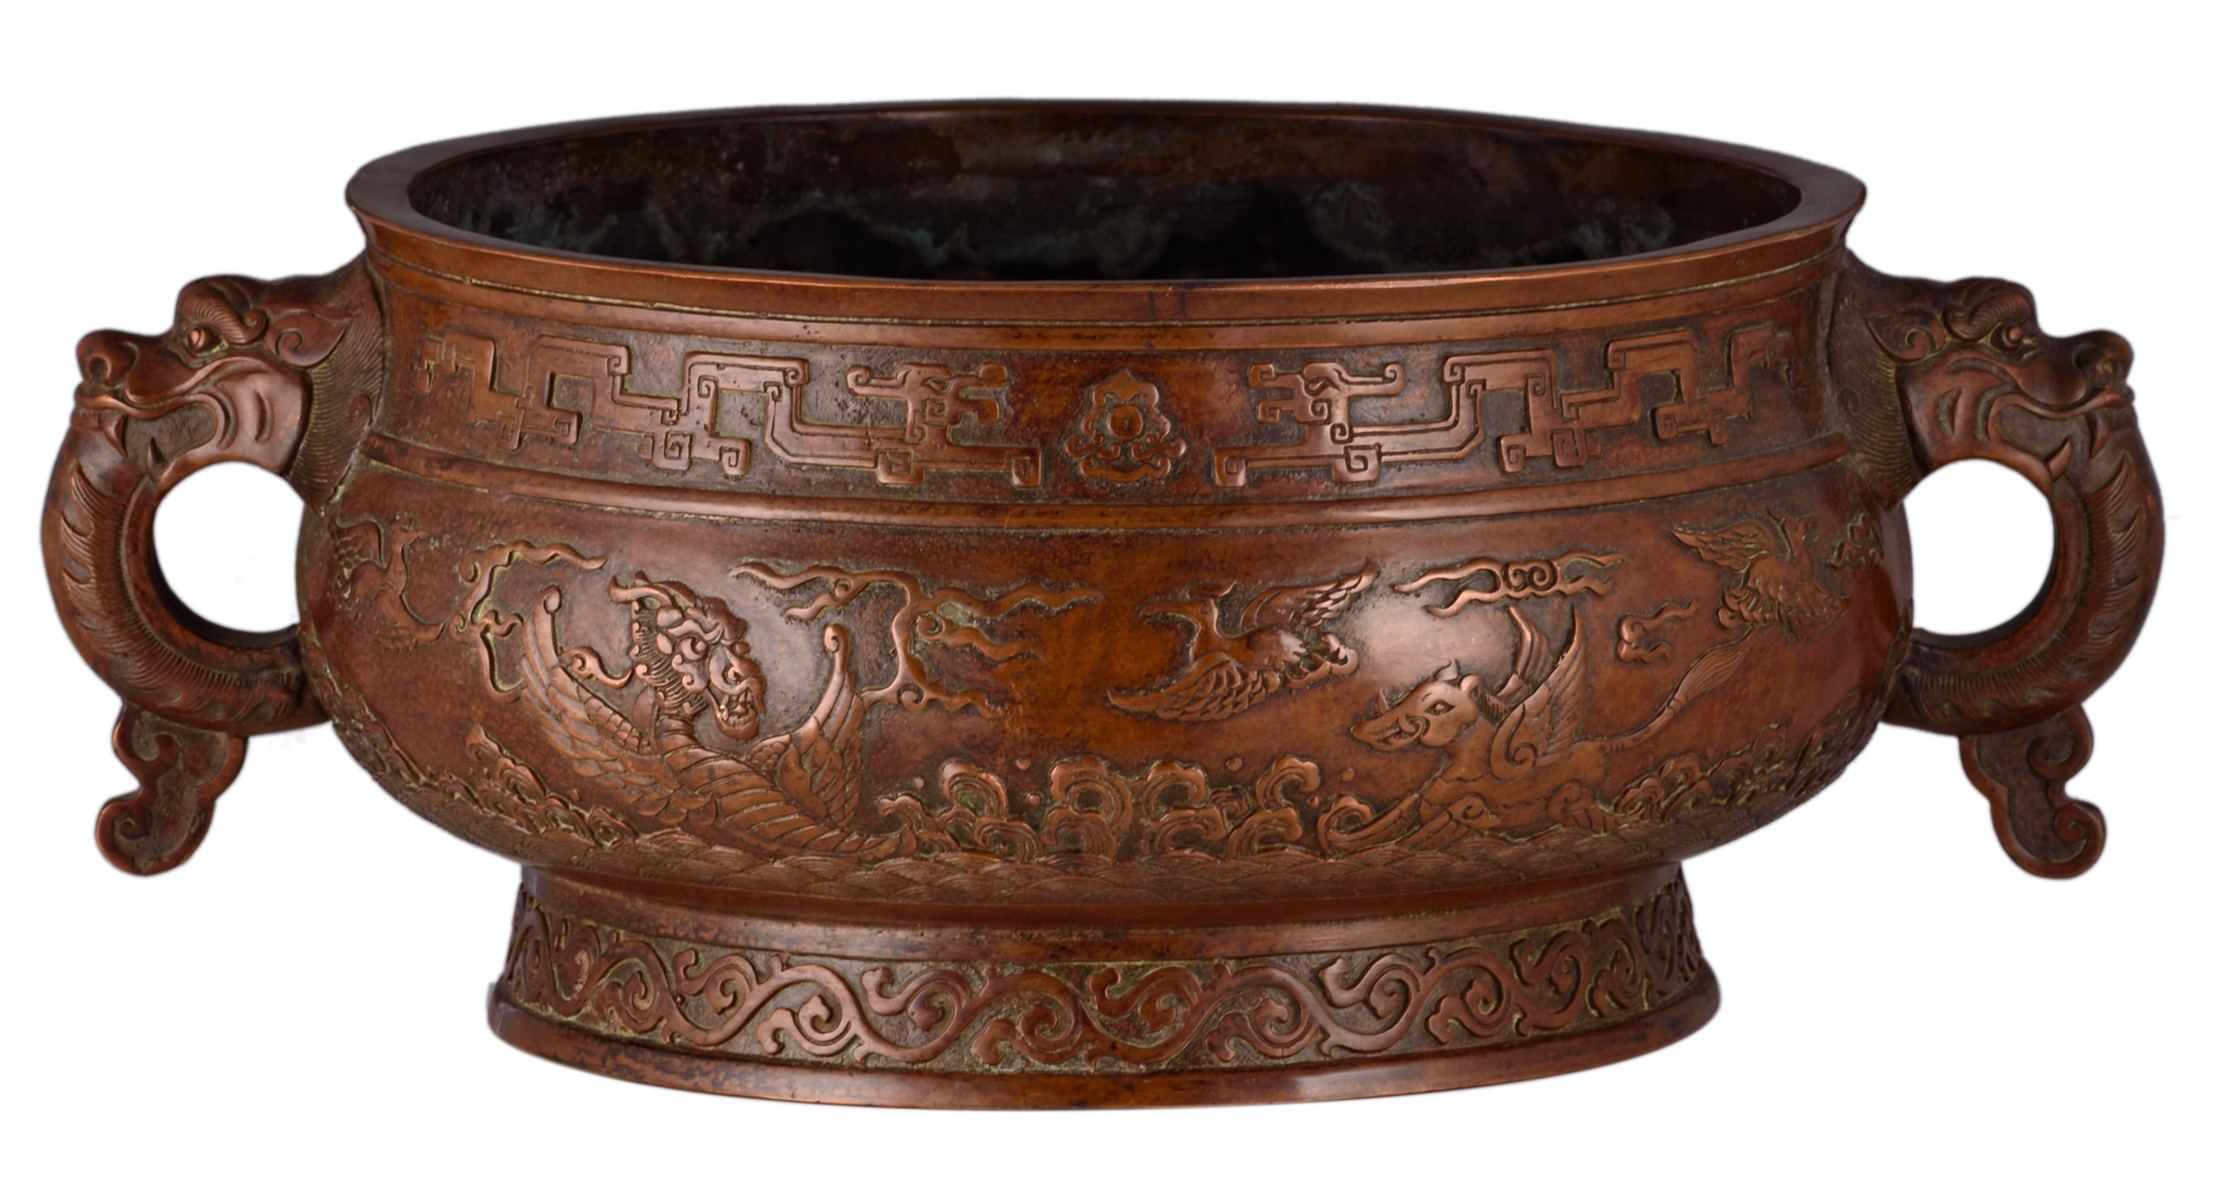 Lot 11 - A Chinese archaic red copper gui incense burner with dragon shaped handles, the central frieze